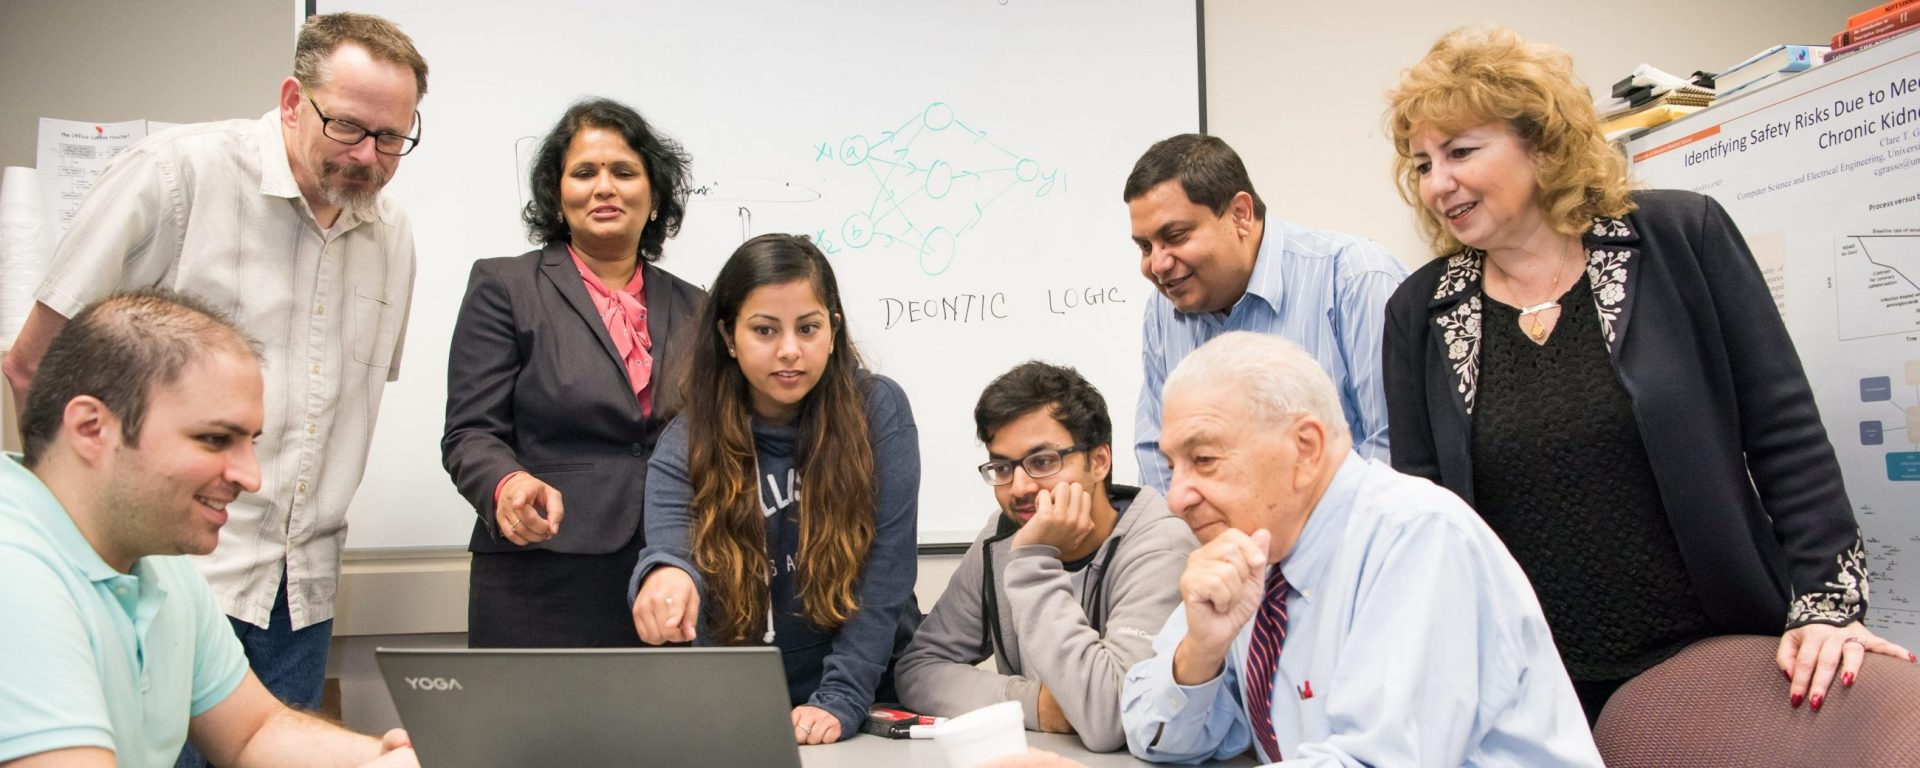 A diverse group of students and professors clusters around a laptop screen in a conference room.